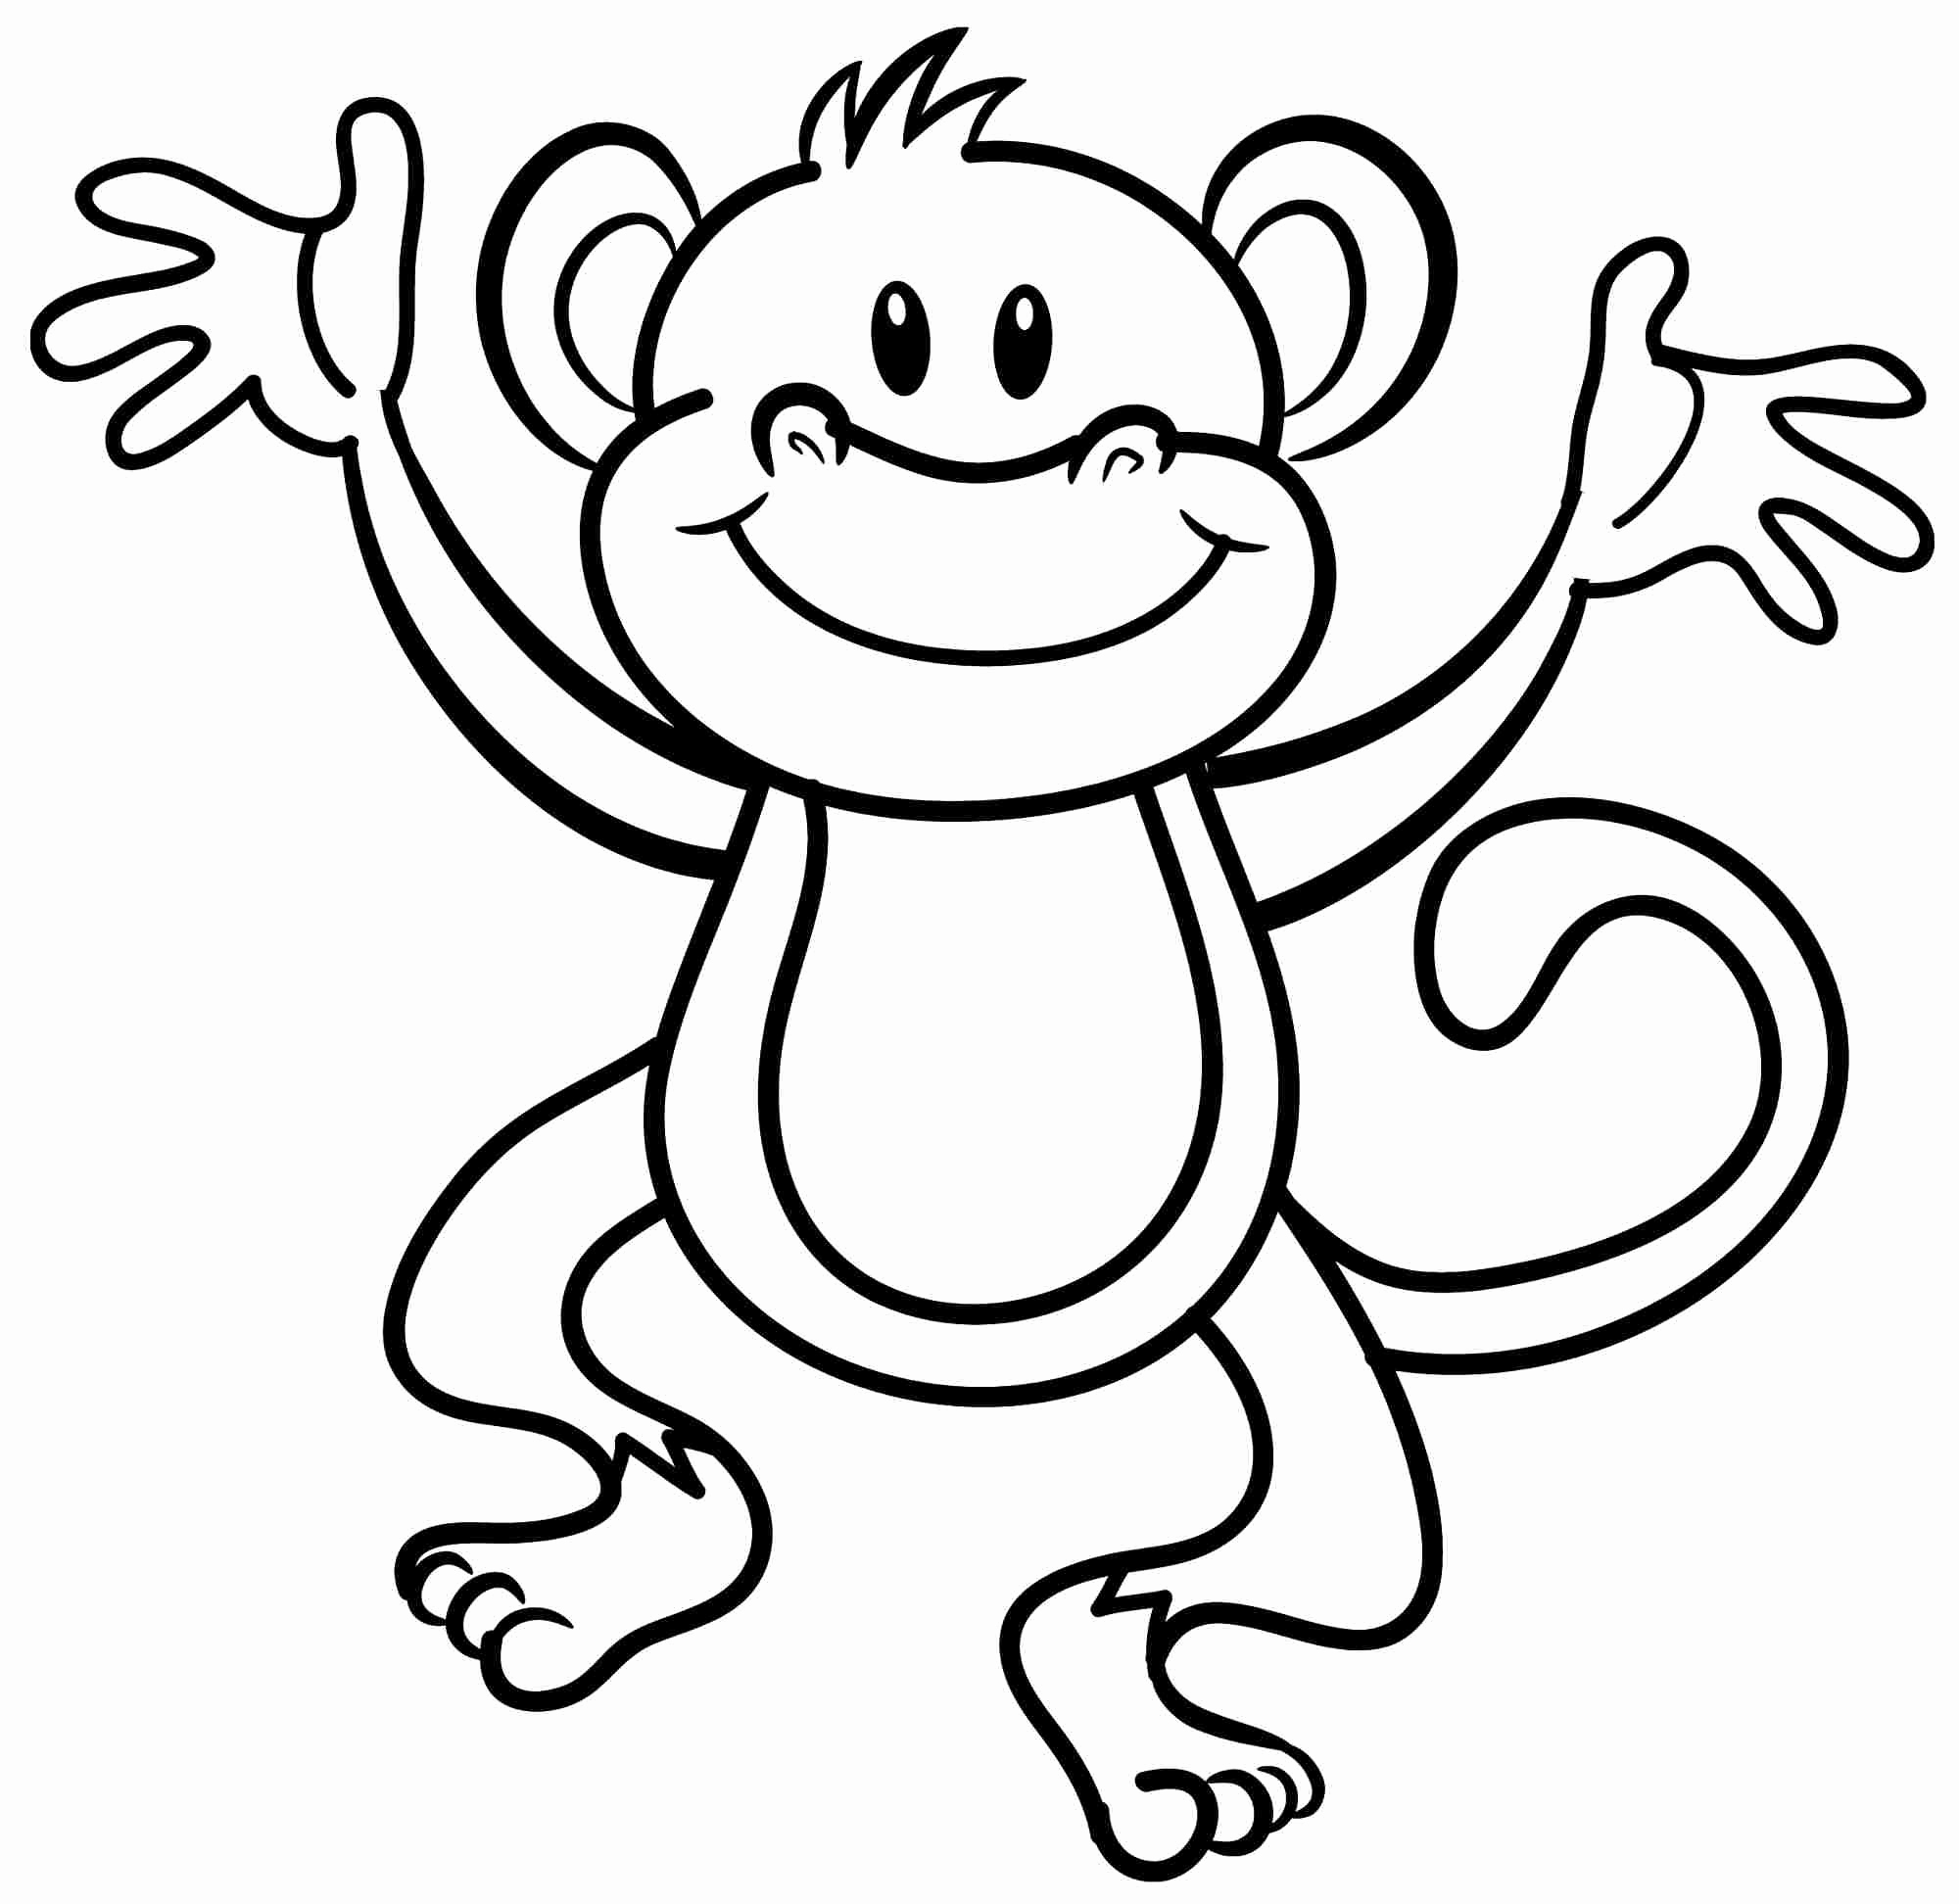 2000x1944 Curious George Coloring Pages Lovely Angry Face Coloring Page